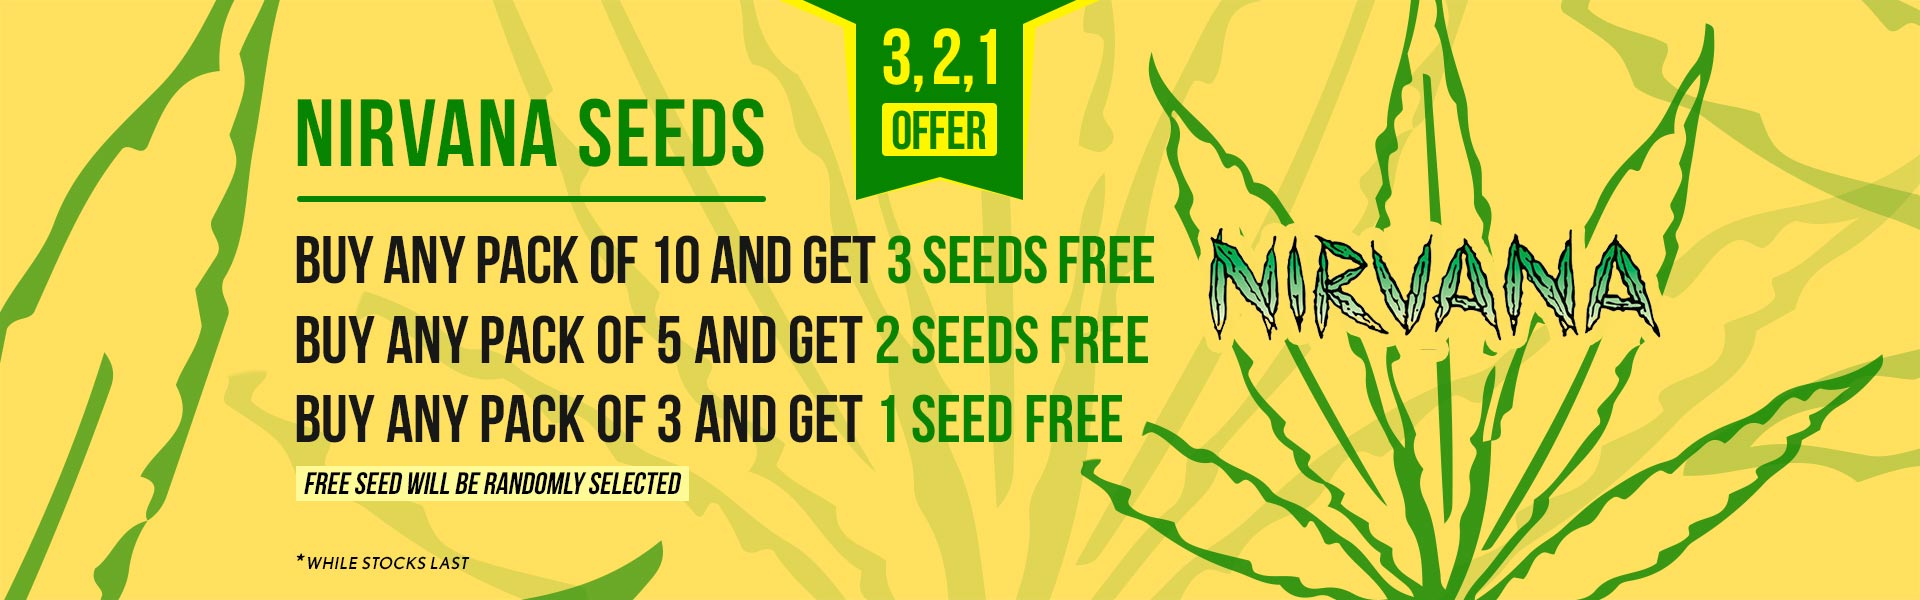 Nirvana Seeds Promotions